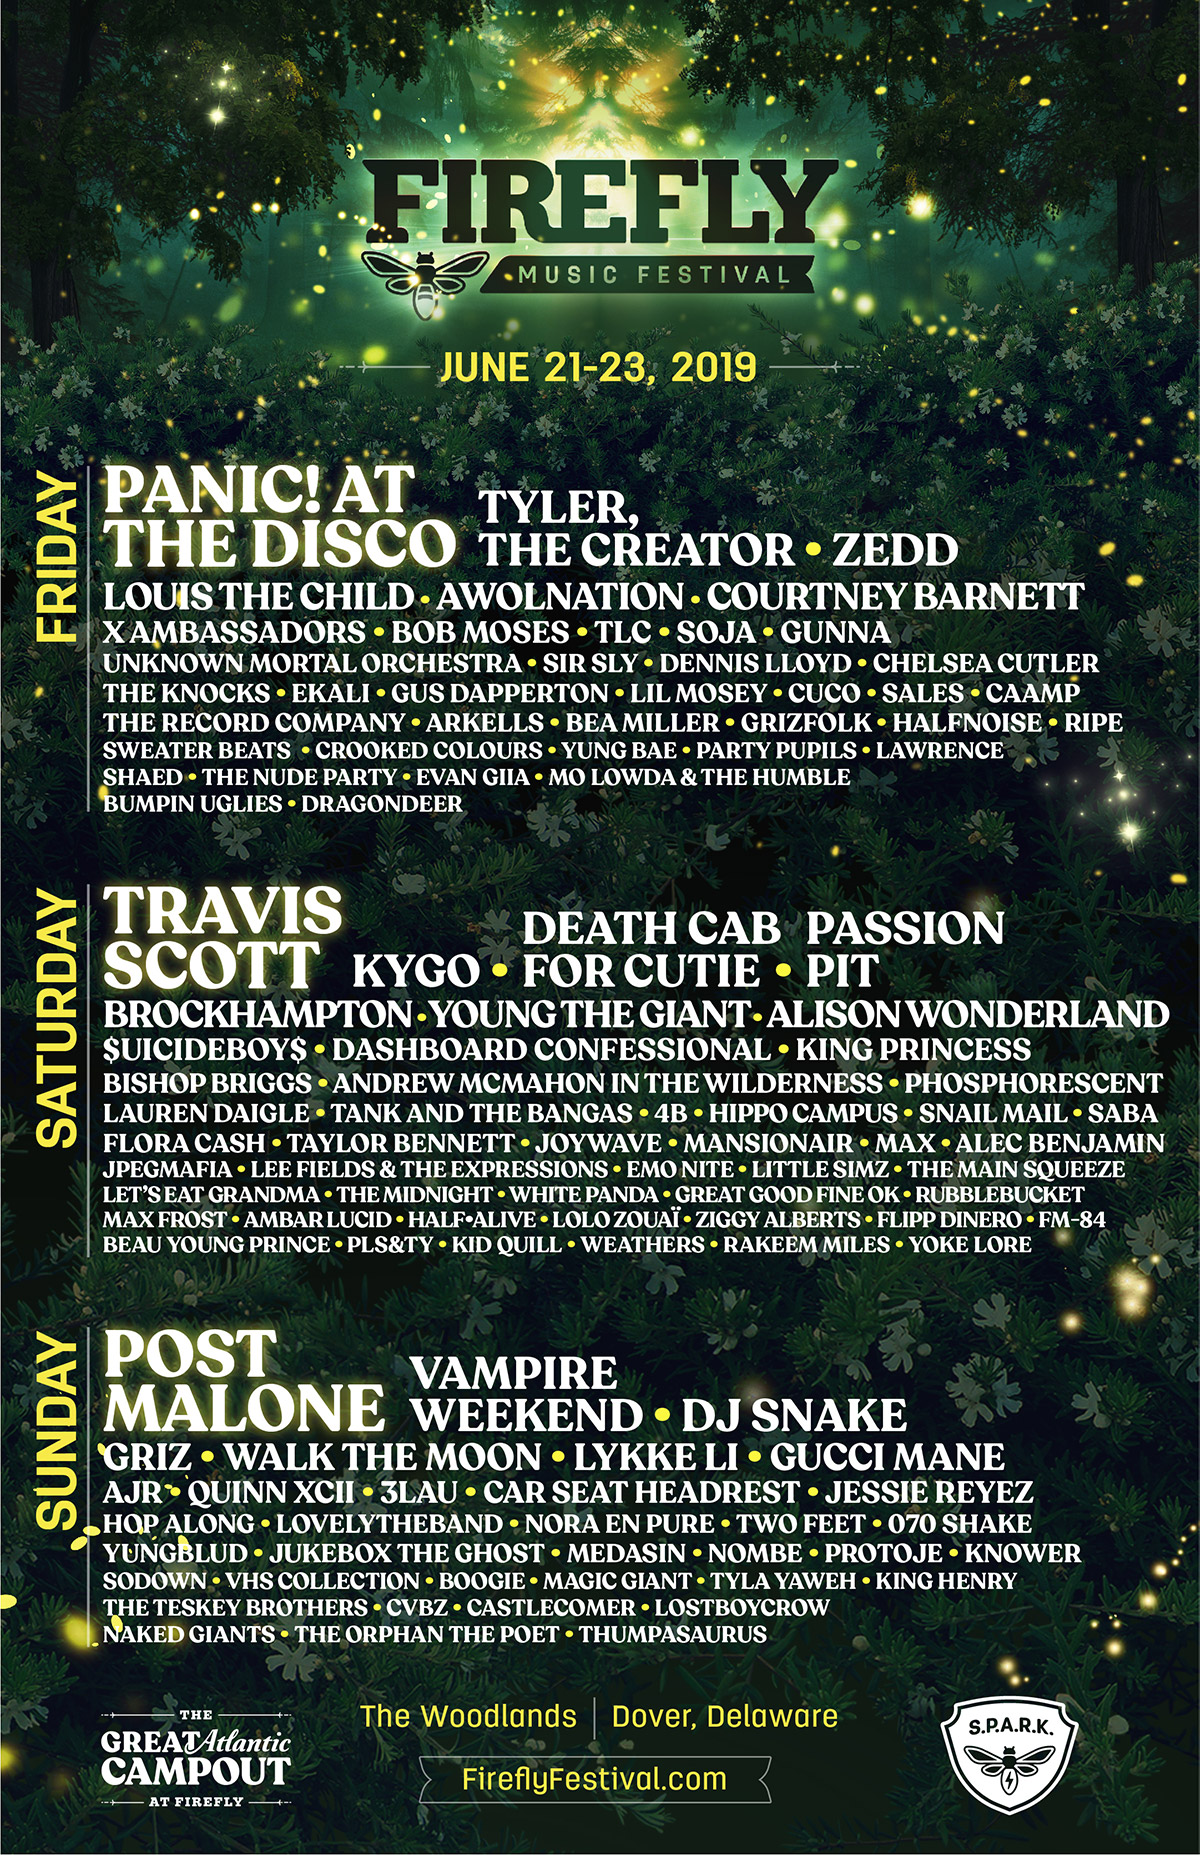 Firefly Music Festival | June 21 - 23 In Dover, Delaware